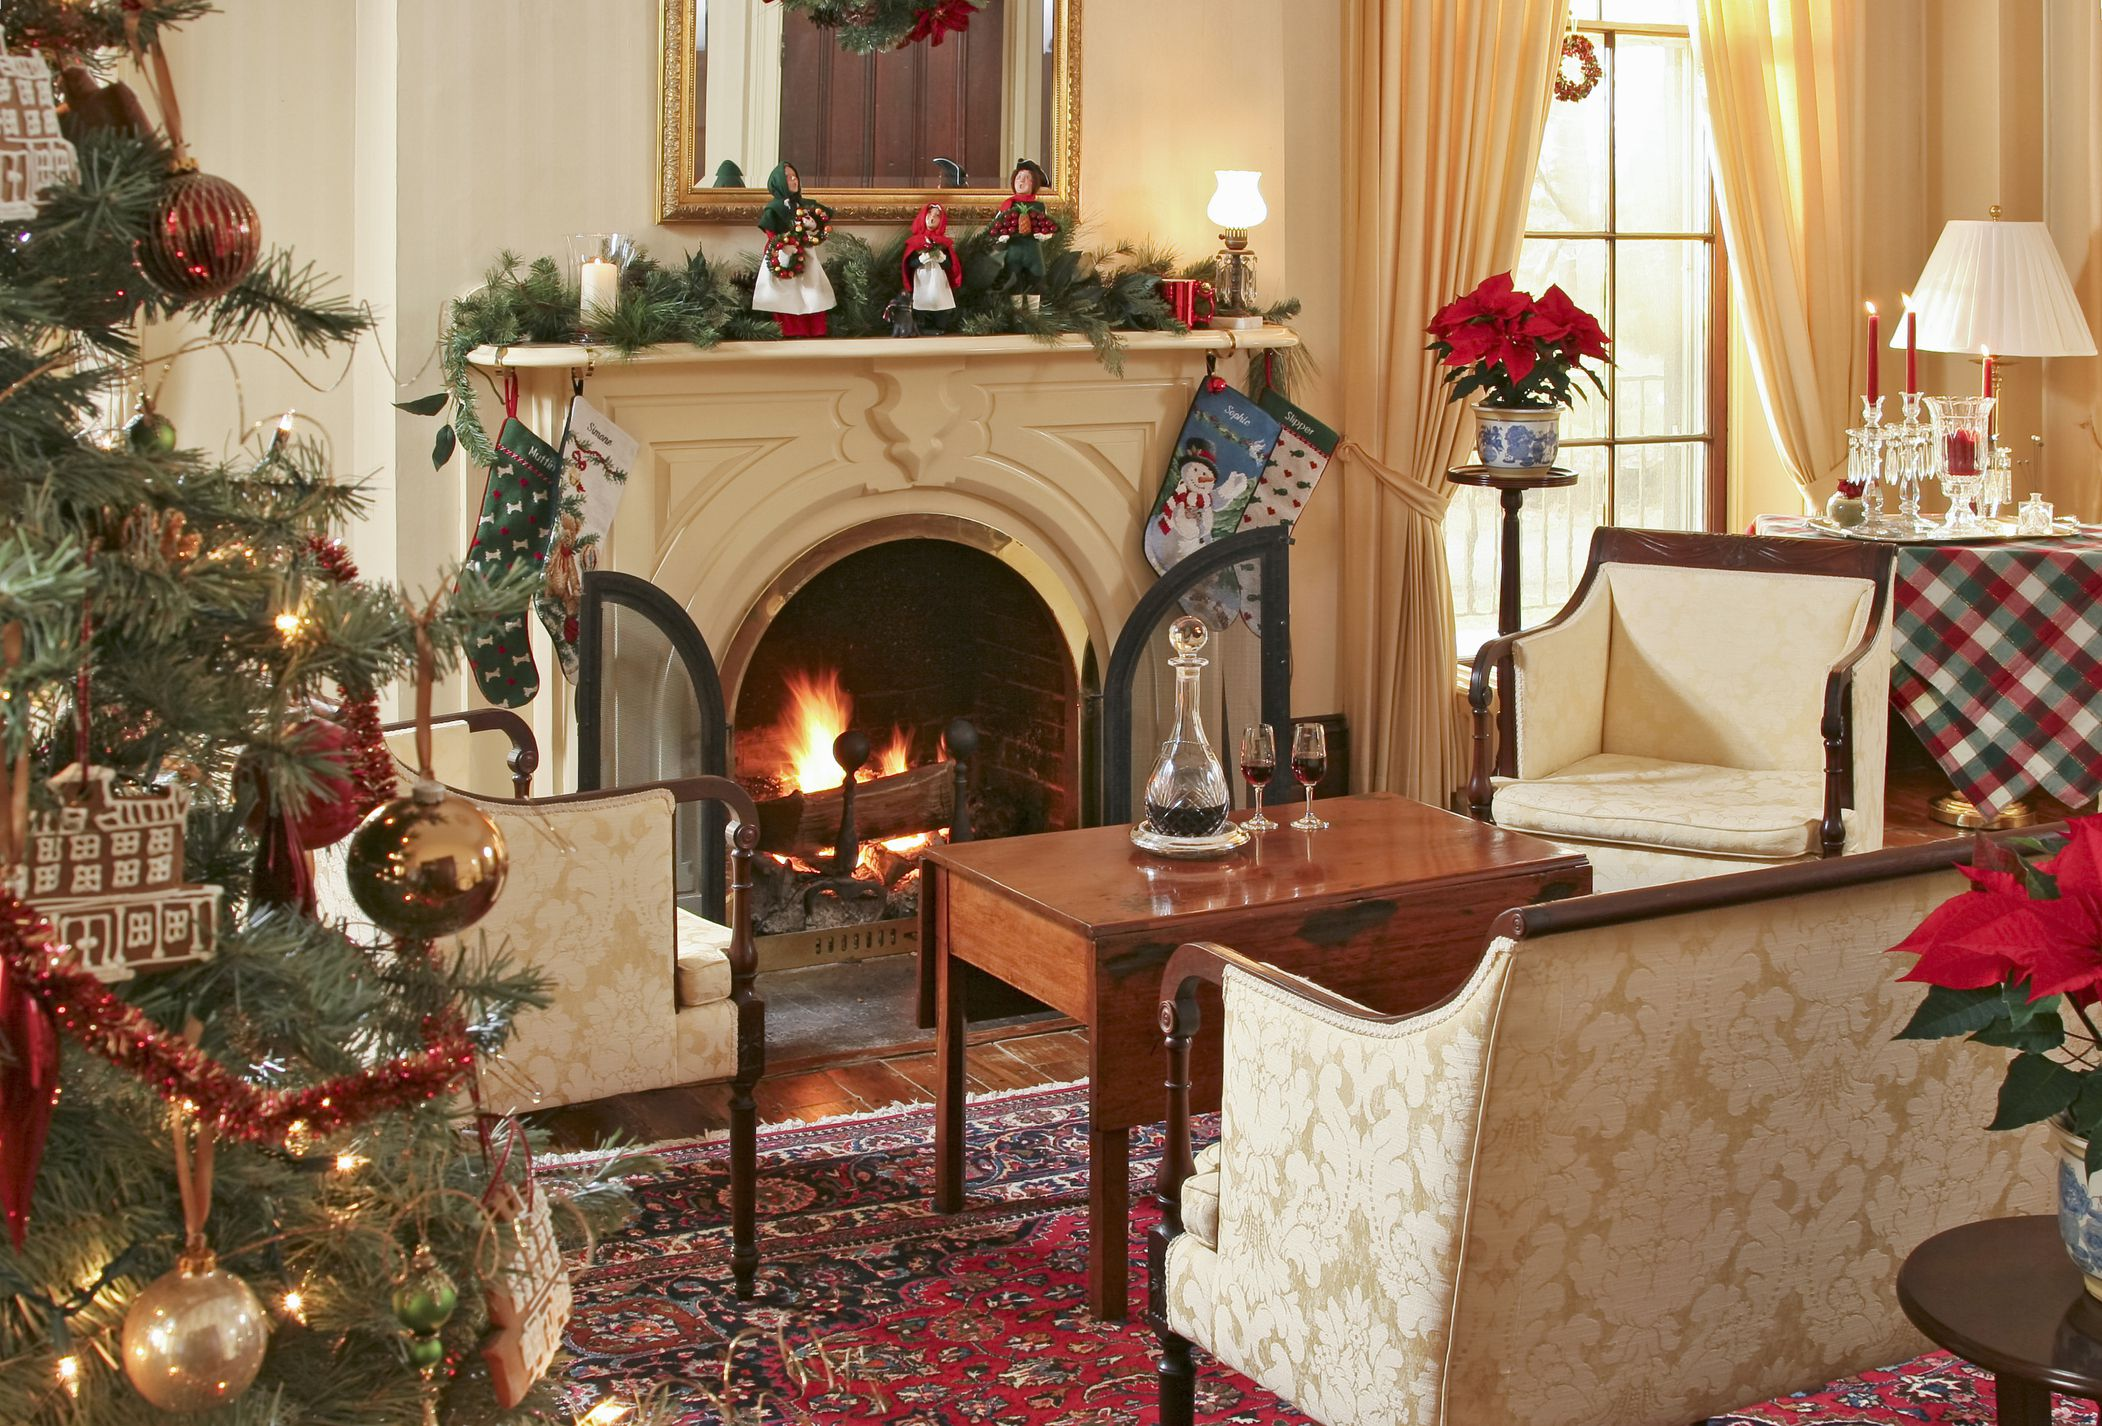 15 beautiful ways to decorate the living room for christmas - Christmas decoration in living room ...